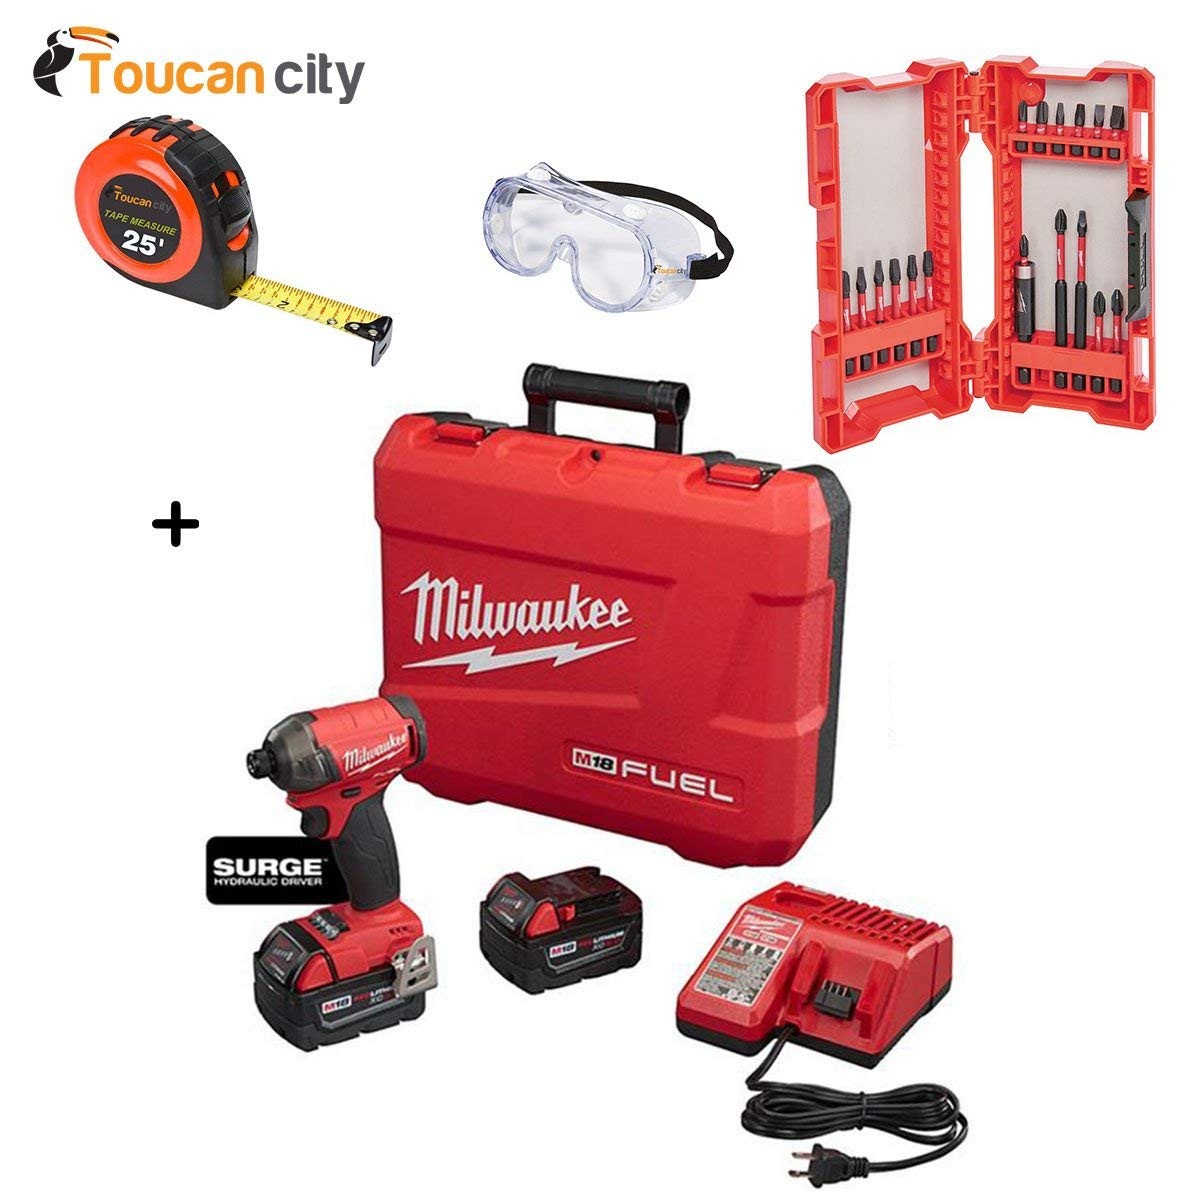 Milwaukee M18 FUEL 18-Volt Lithium-Ion Brushless Cordless 1/4 in. Hex Hydraulic Impact Driver Kit W/ Shockwave Bit Set (18-Piece) 2760-22-48-32-4403 and Toucan City Tape Measure and Safety Goggles